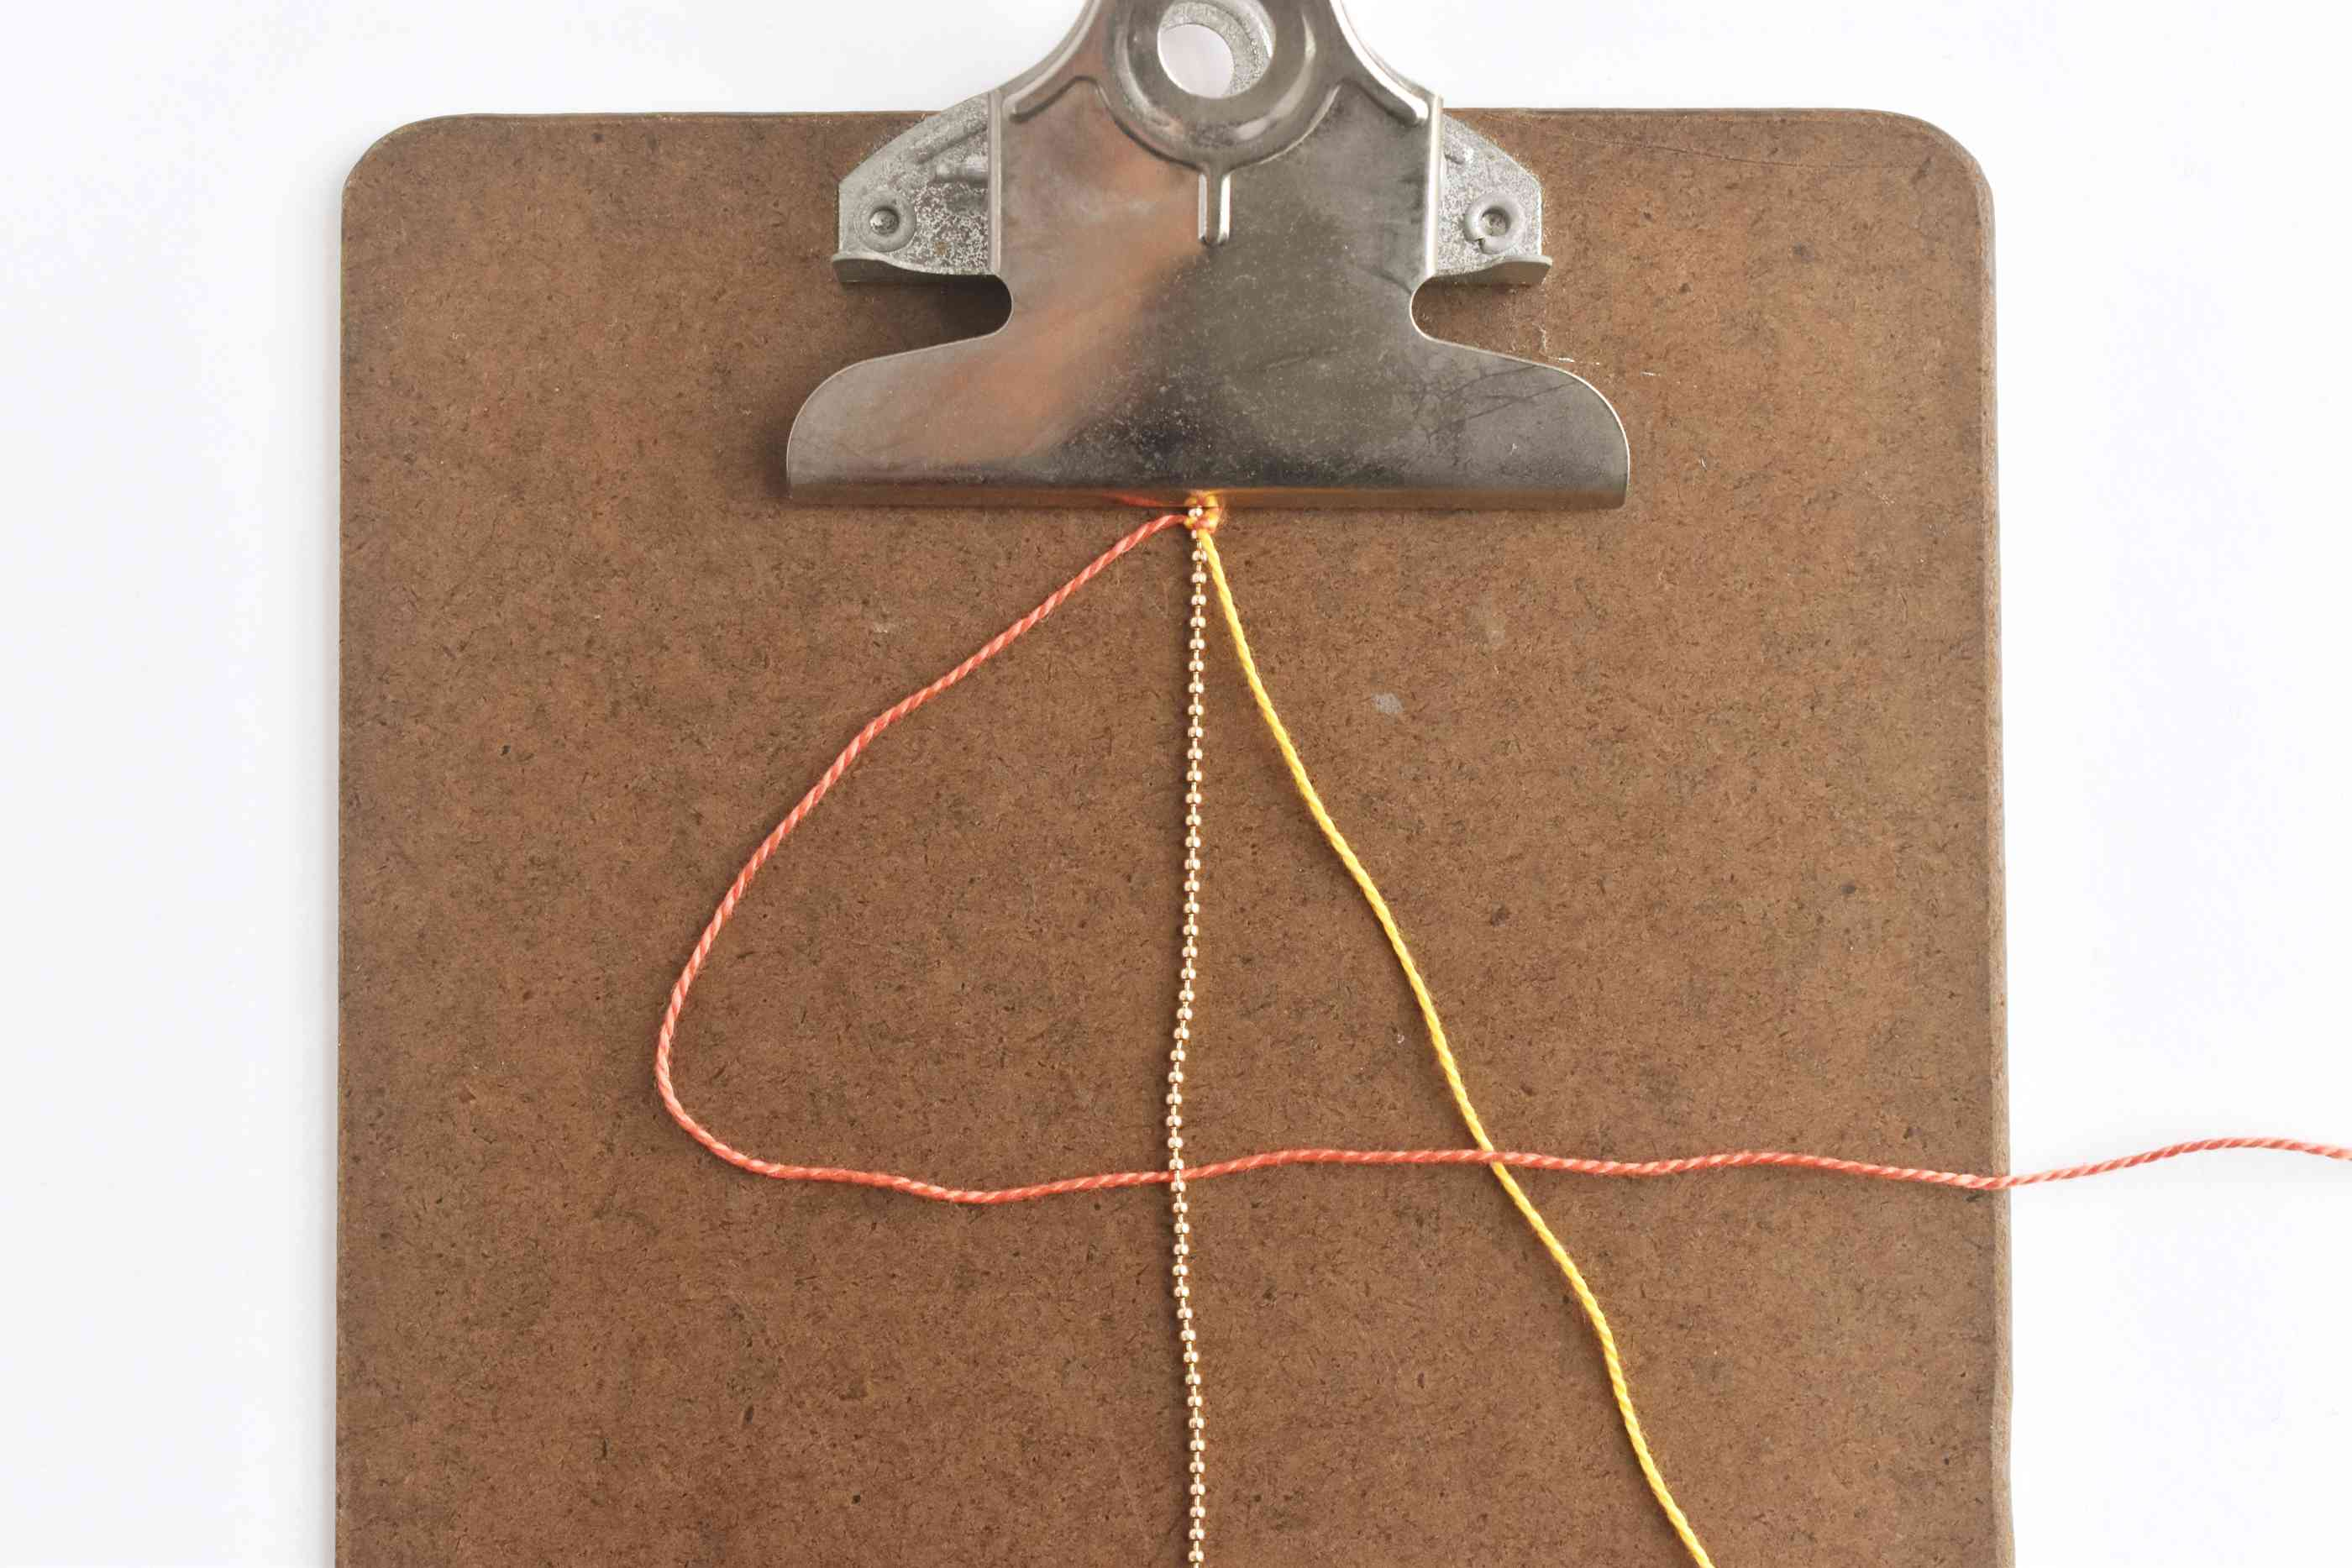 Place the Left Thread Behind the Chain and Over the Right Thread